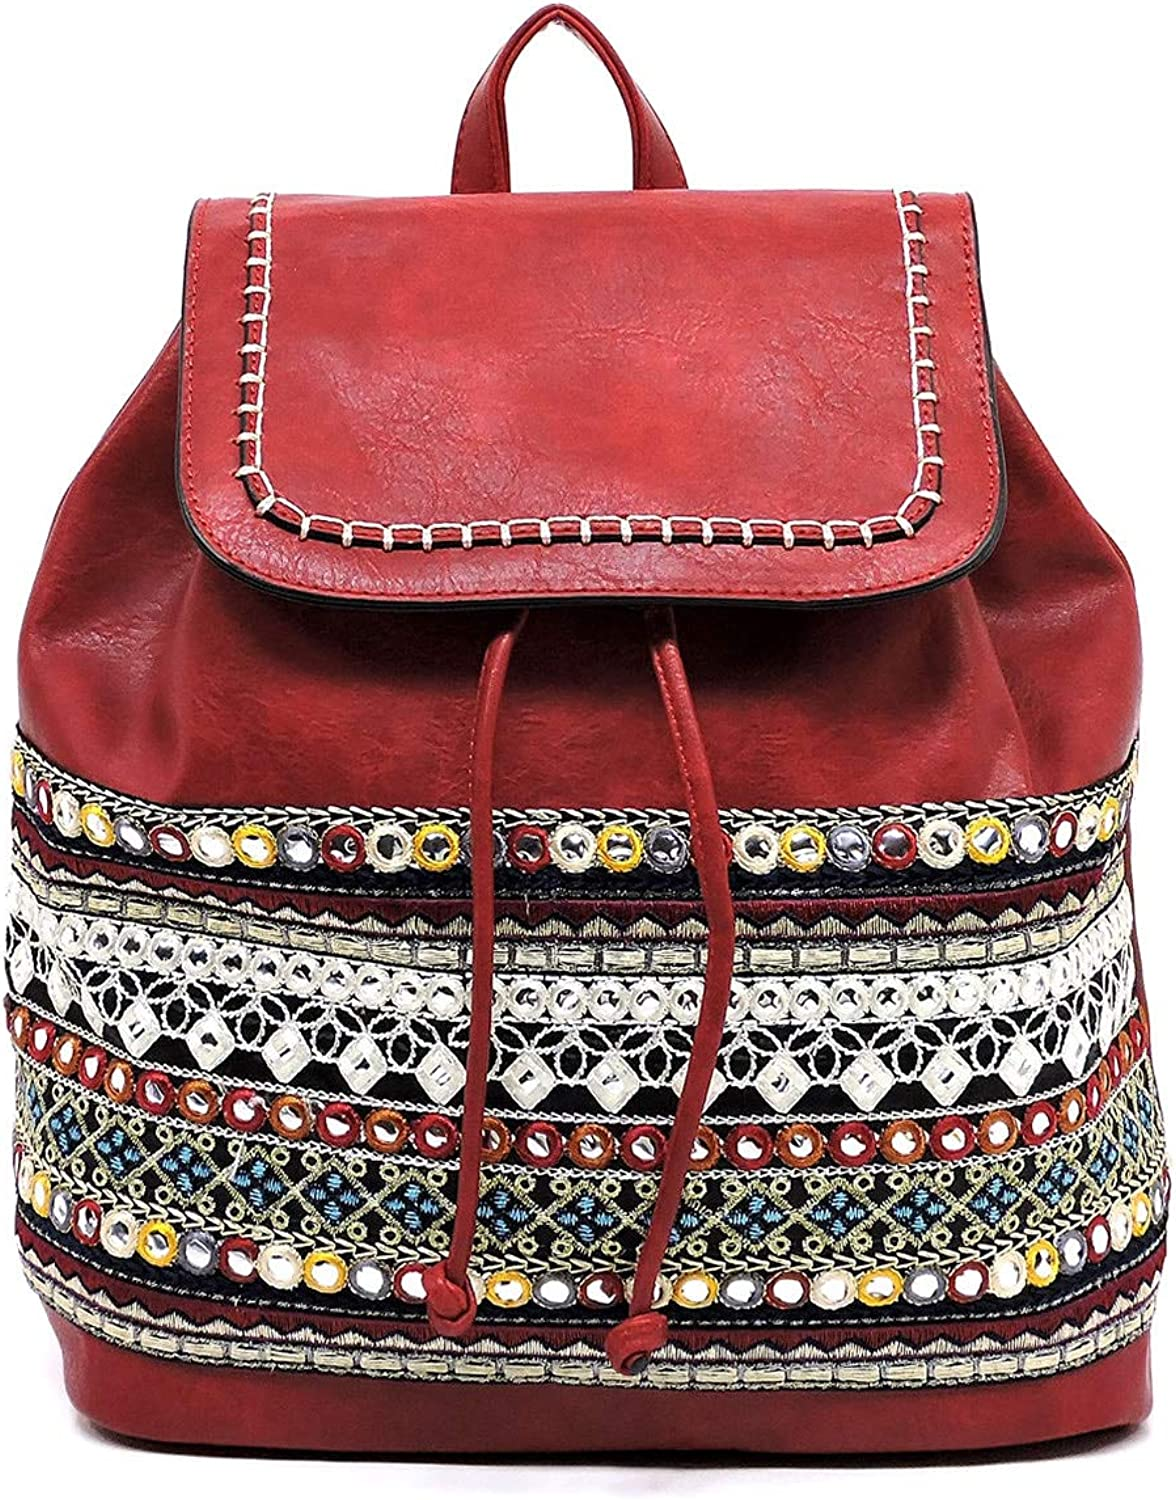 Le Miel Boho Embroidered Medium (11 L x 6 W x 14 H) Backpack- 6 colors